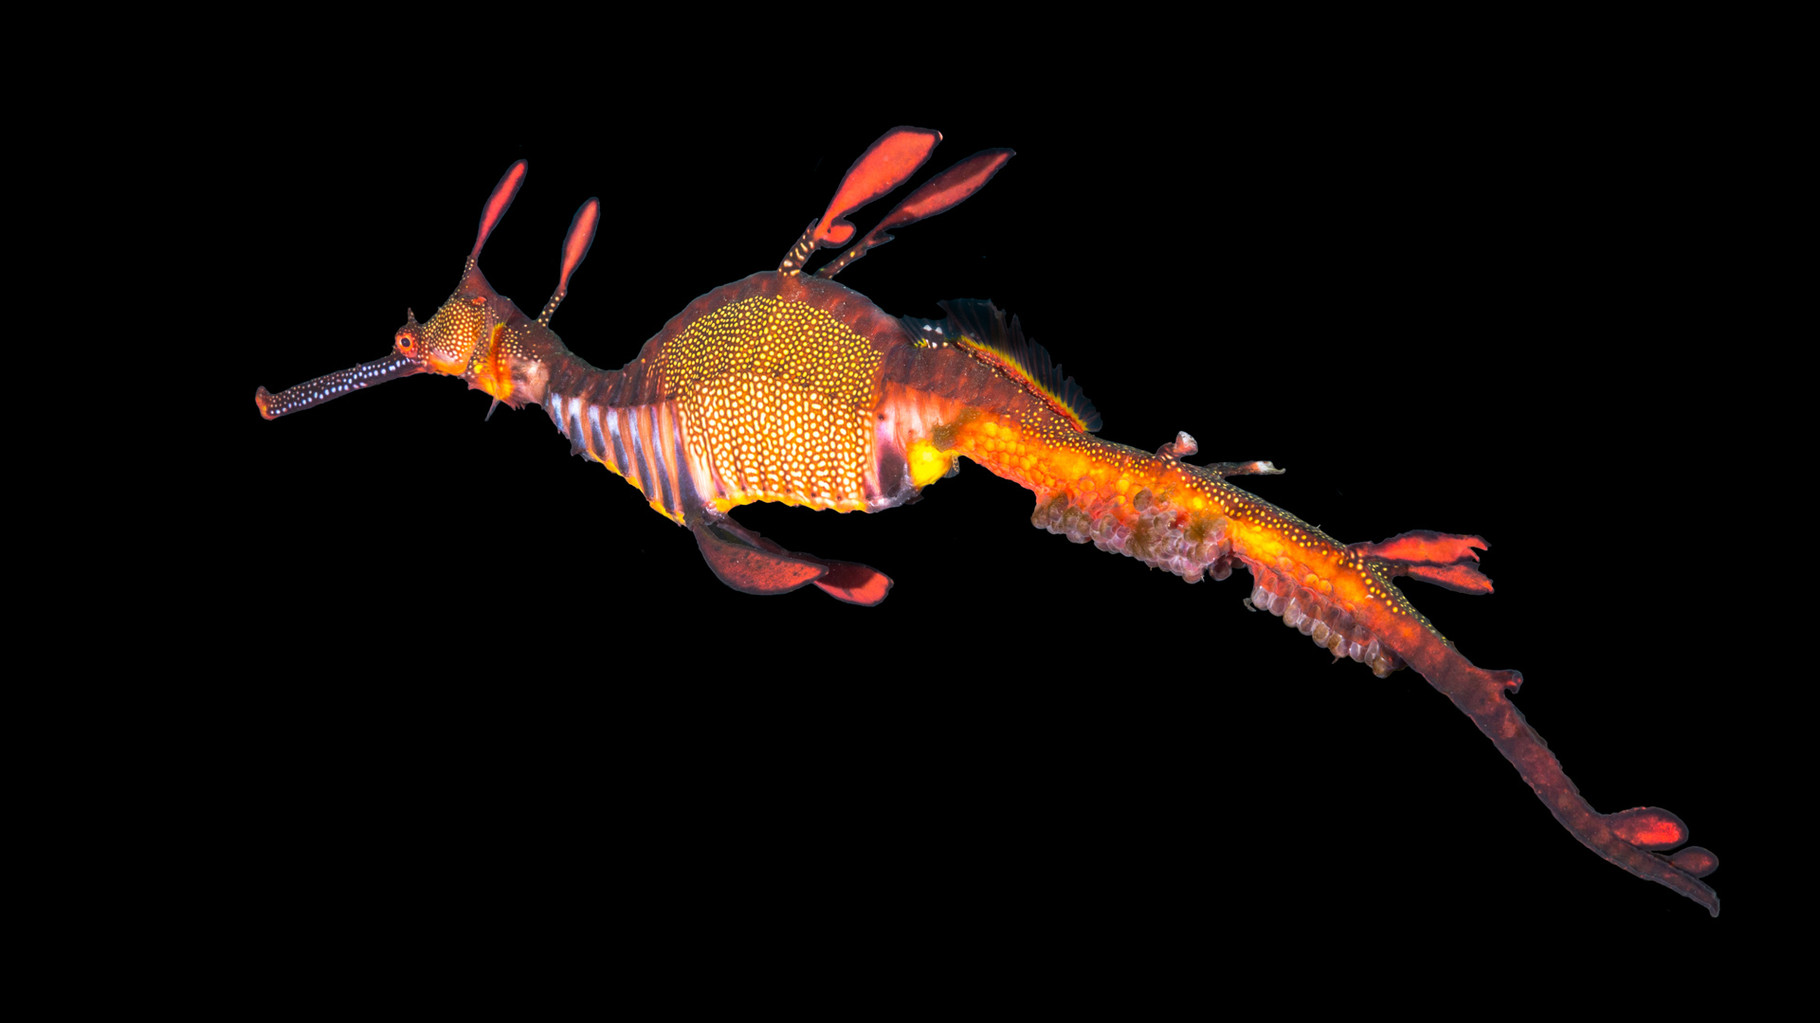 Male Weedy seadragon carrying eggs, Tasmania [Australia, 2014]